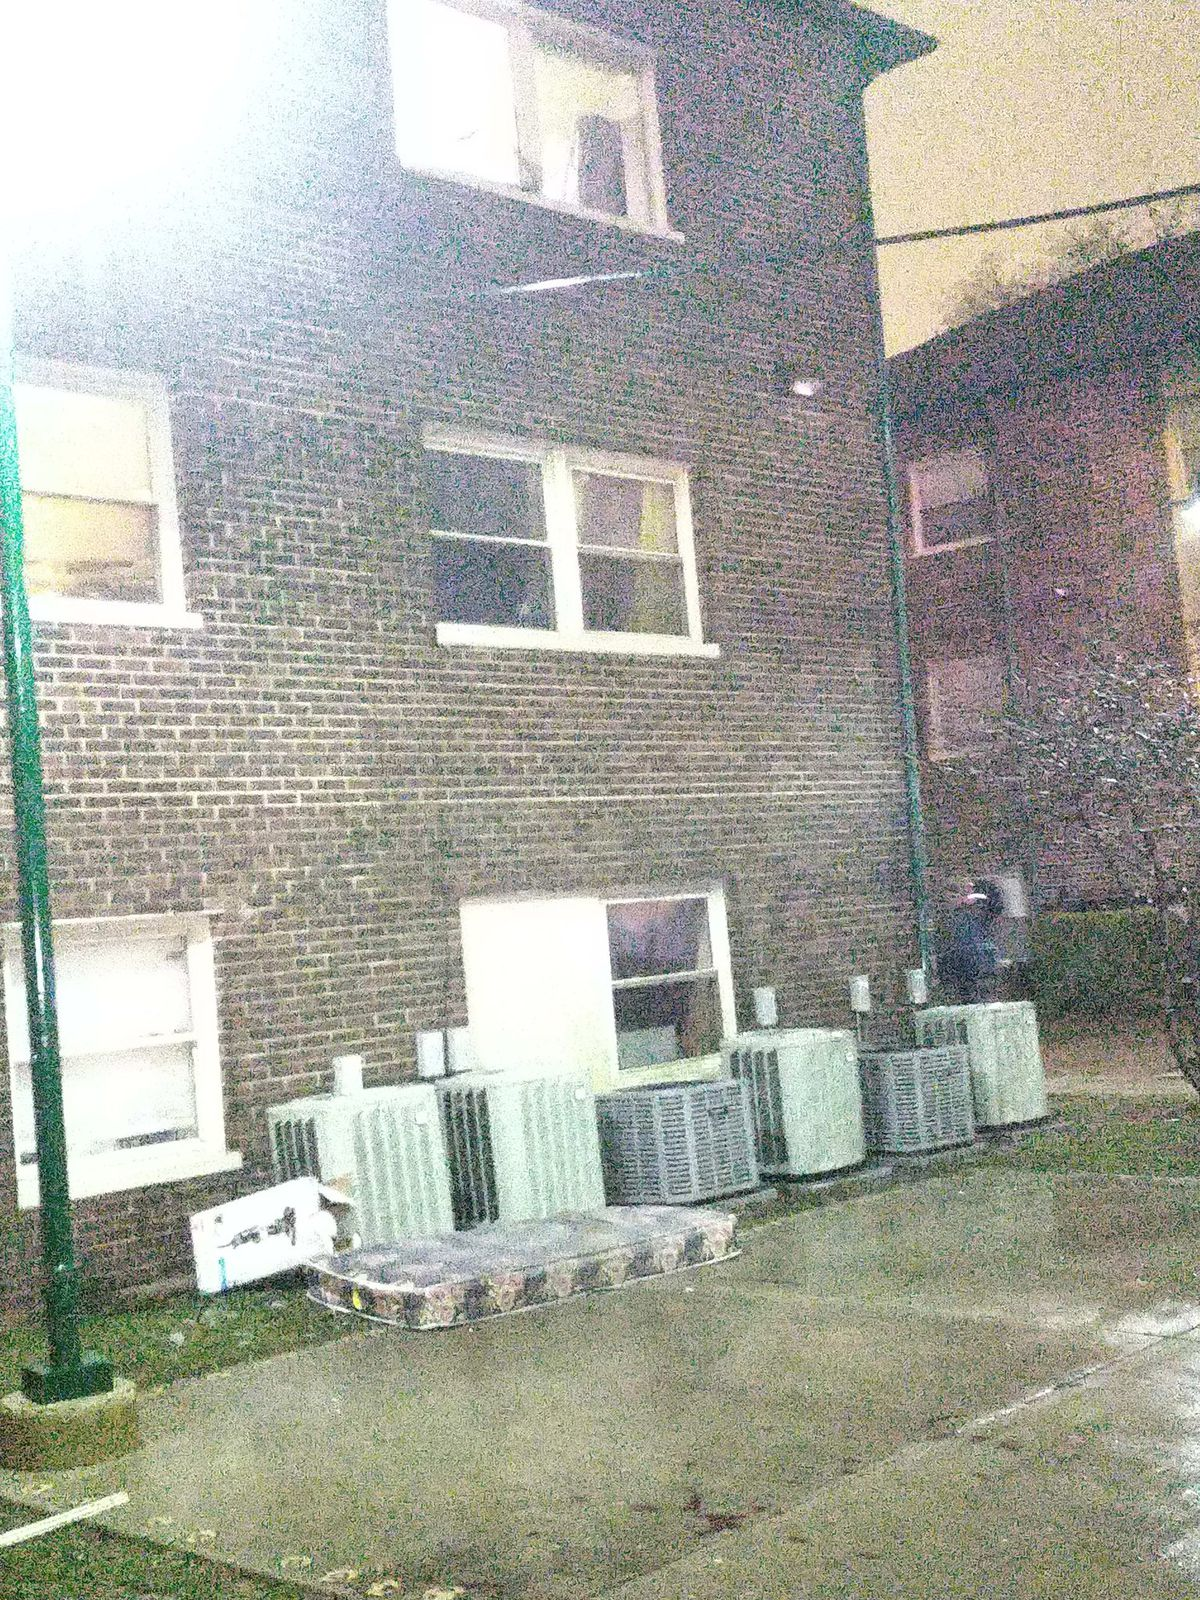 A young child threw this mattress from a window and jumped to safety March 17, 2021, in the 6100 block of South Wabash Avenue.